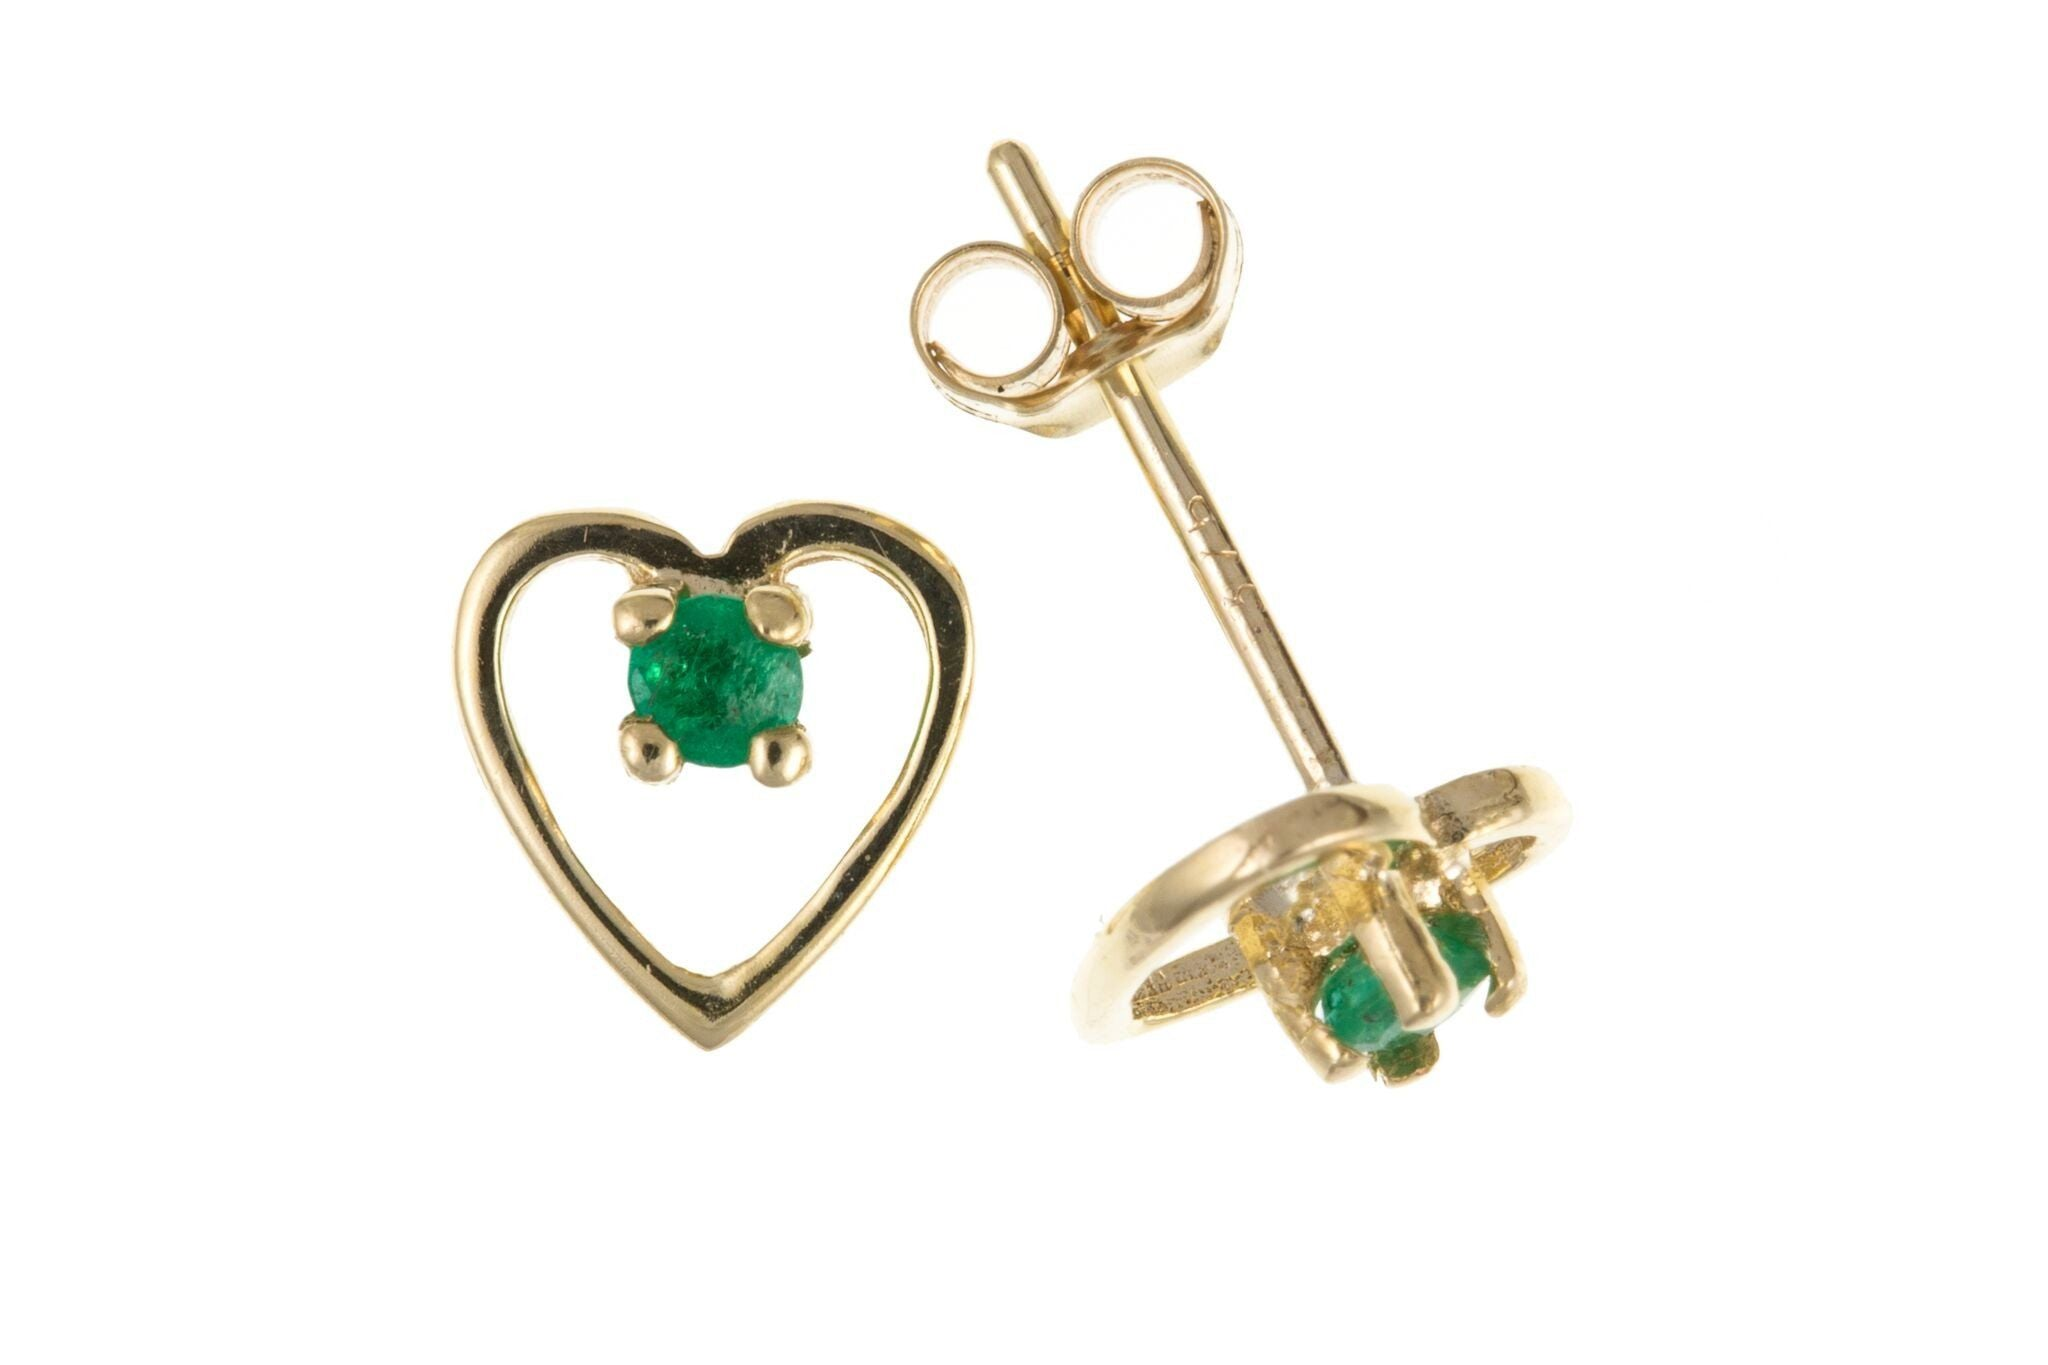 9ct Yellow Gold Emerald Heart Stud Earrings